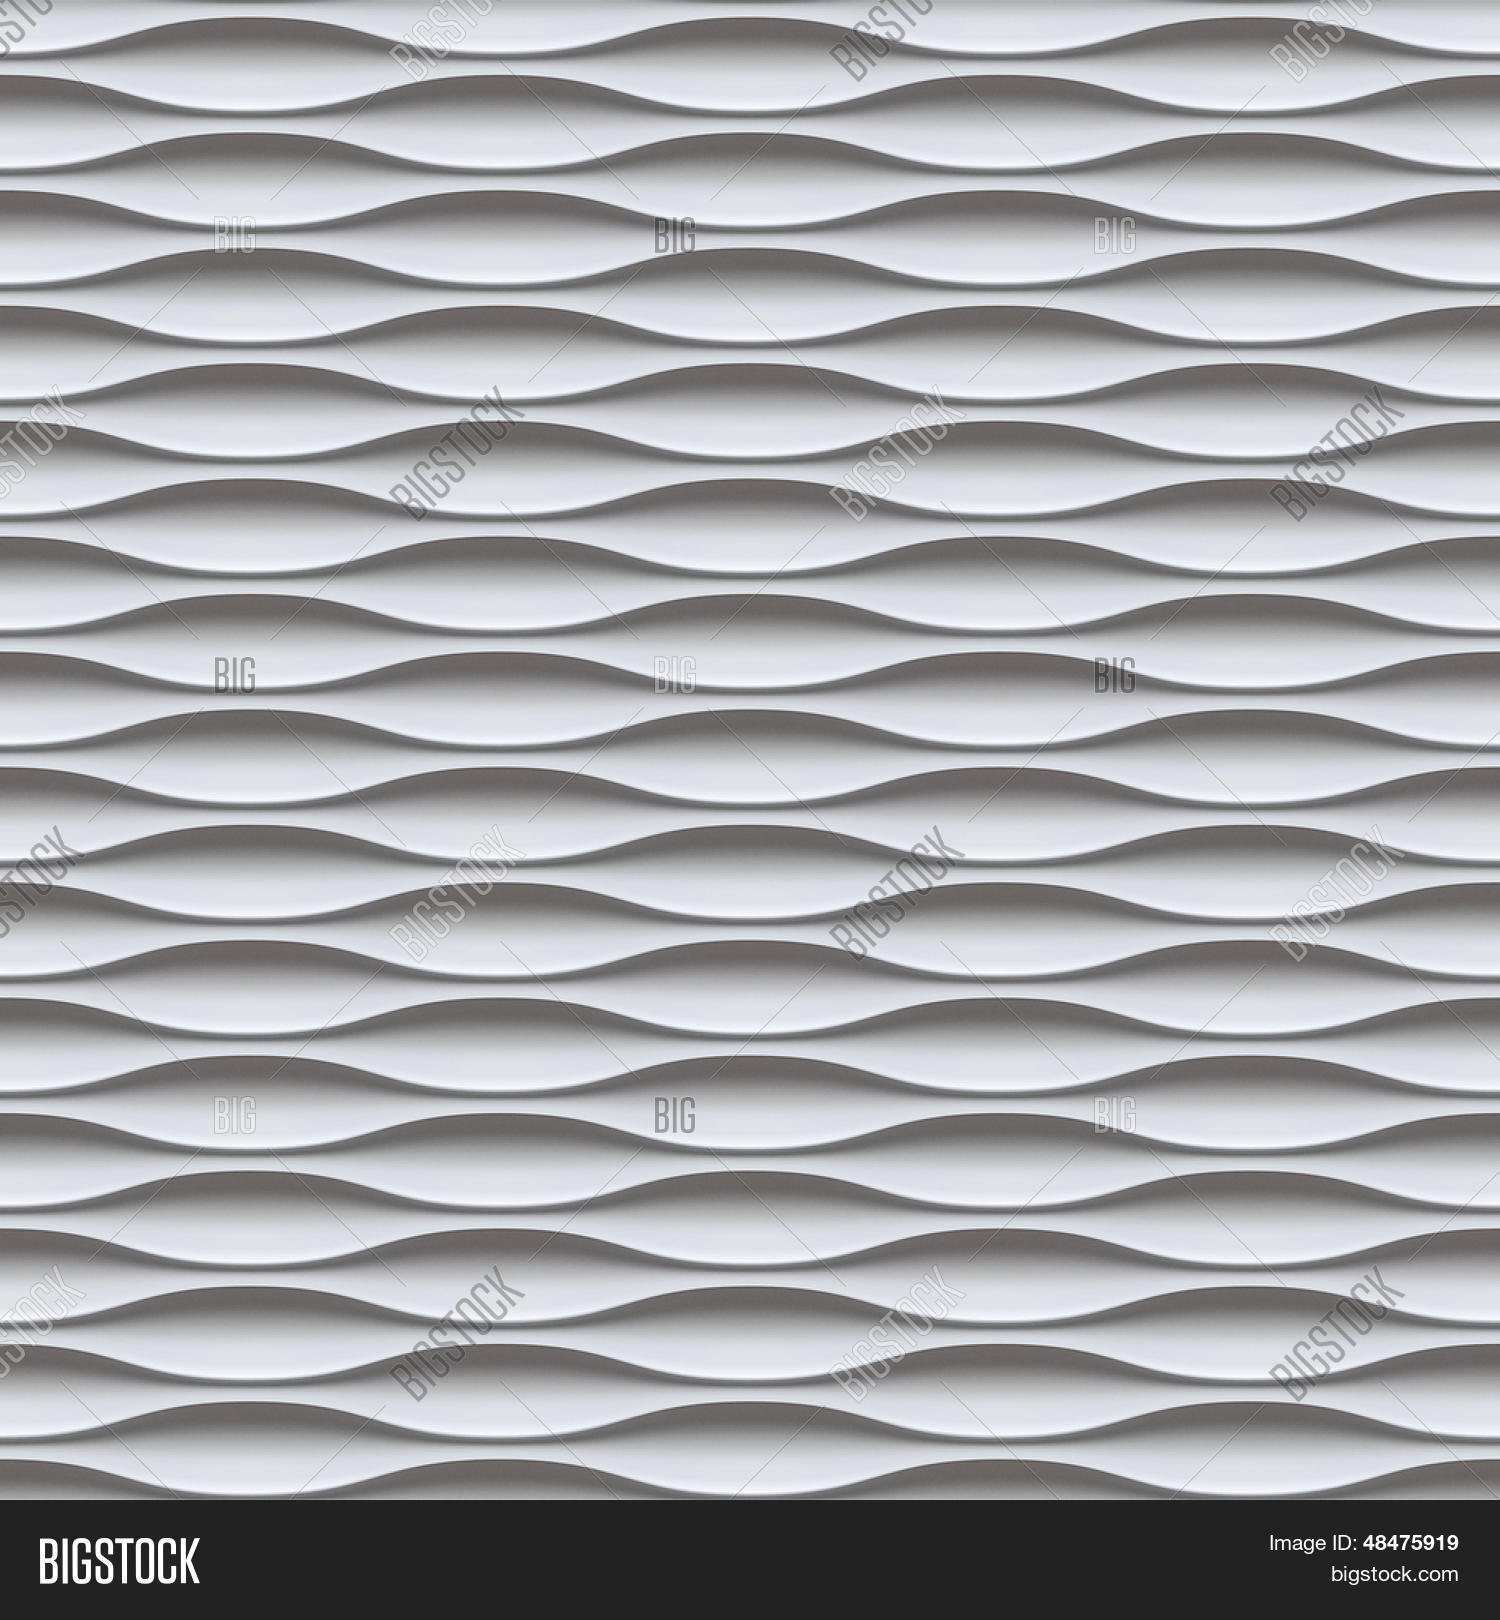 Black seamless texture vertical image photo bigstock for Interior wall textures designs